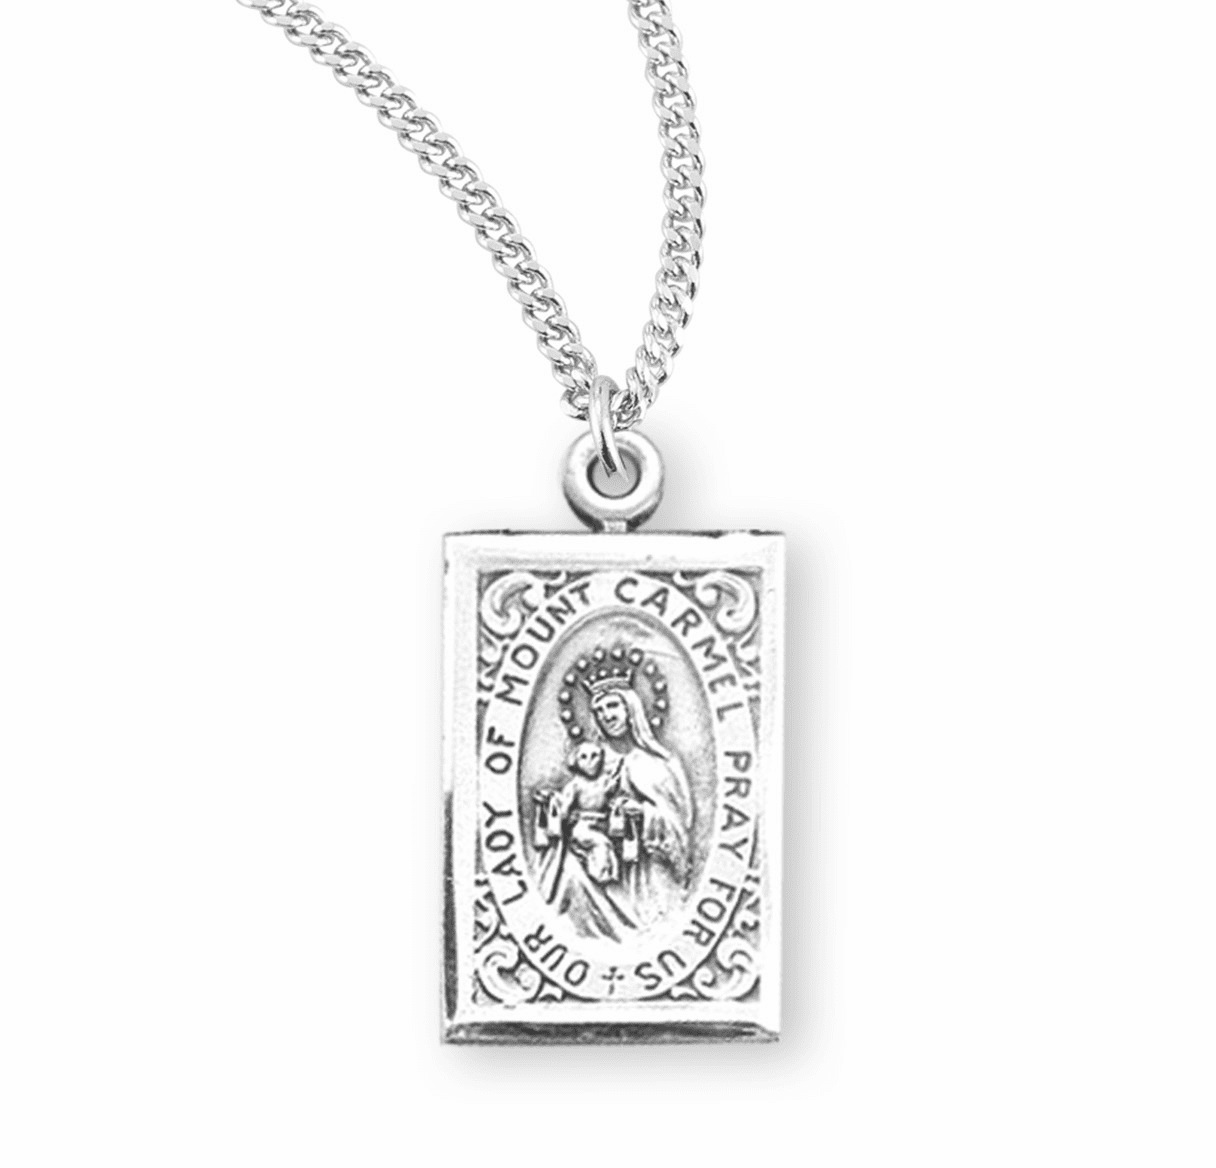 HMH Religious Our Lady of Mount Carmel Sterling Silver Scapular Medal Necklace